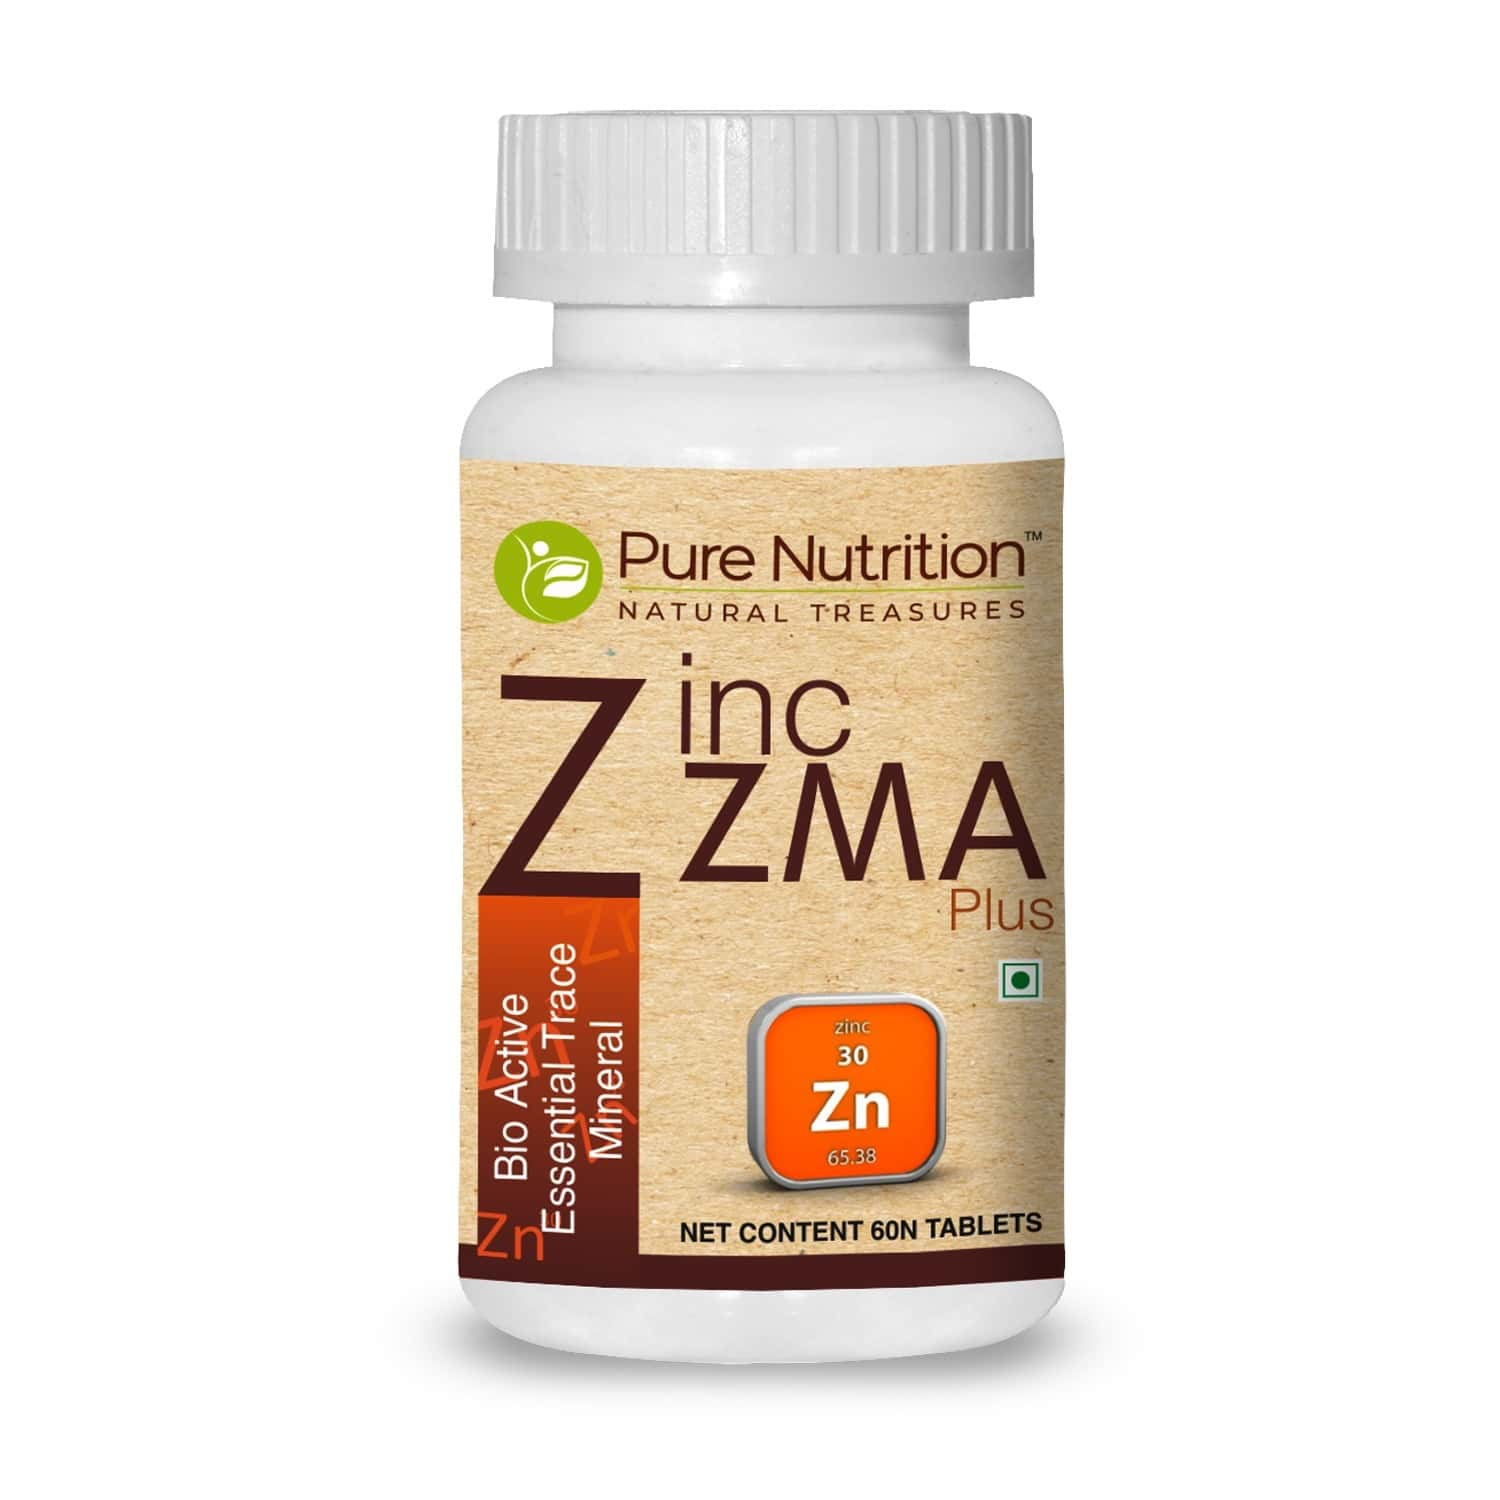 Pure Nutrition Zinc Zma Plus (bio Active Essential Trace Minerals) - 60 Tablets